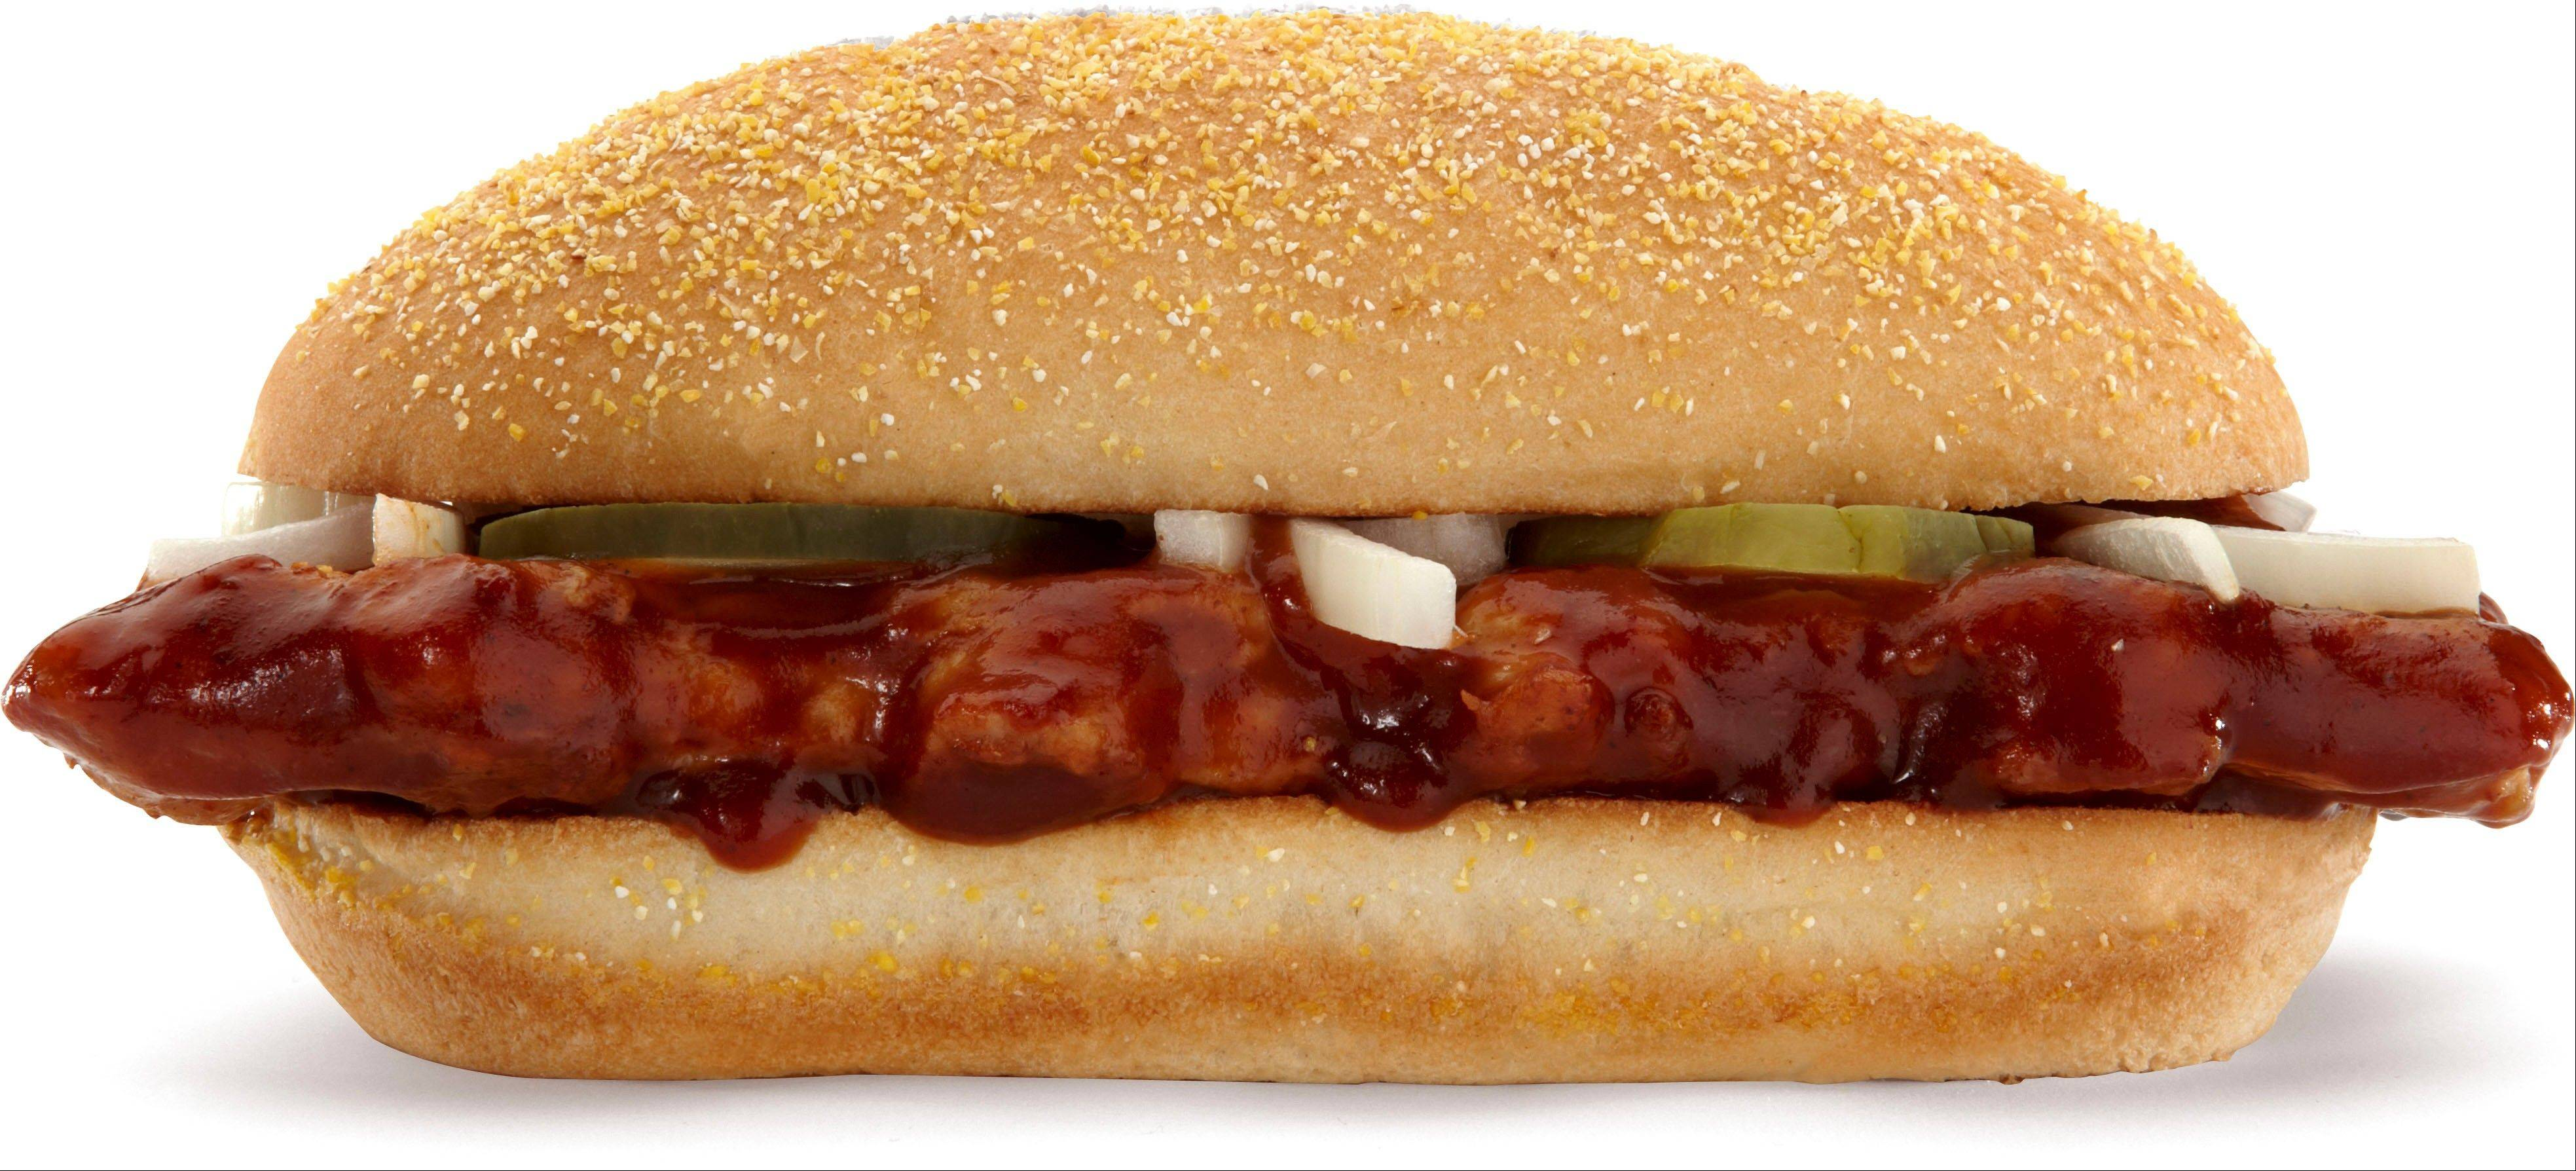 This product image of McDonald's shows their McRib sandwich. McDonald's Corp. said Wednesday, Nov. 20, 2013, that the McRib won't be available nationally in 2014. The fast-food chain says it�s leaving it up to local franchises to decide whether to offer the pork sandwich, which comes with pickles, onions and barbecue sauce. That�s a change from the past three years, when McDonald's had put the McRib on the national menu as a way to boost sales in the second half of the year.